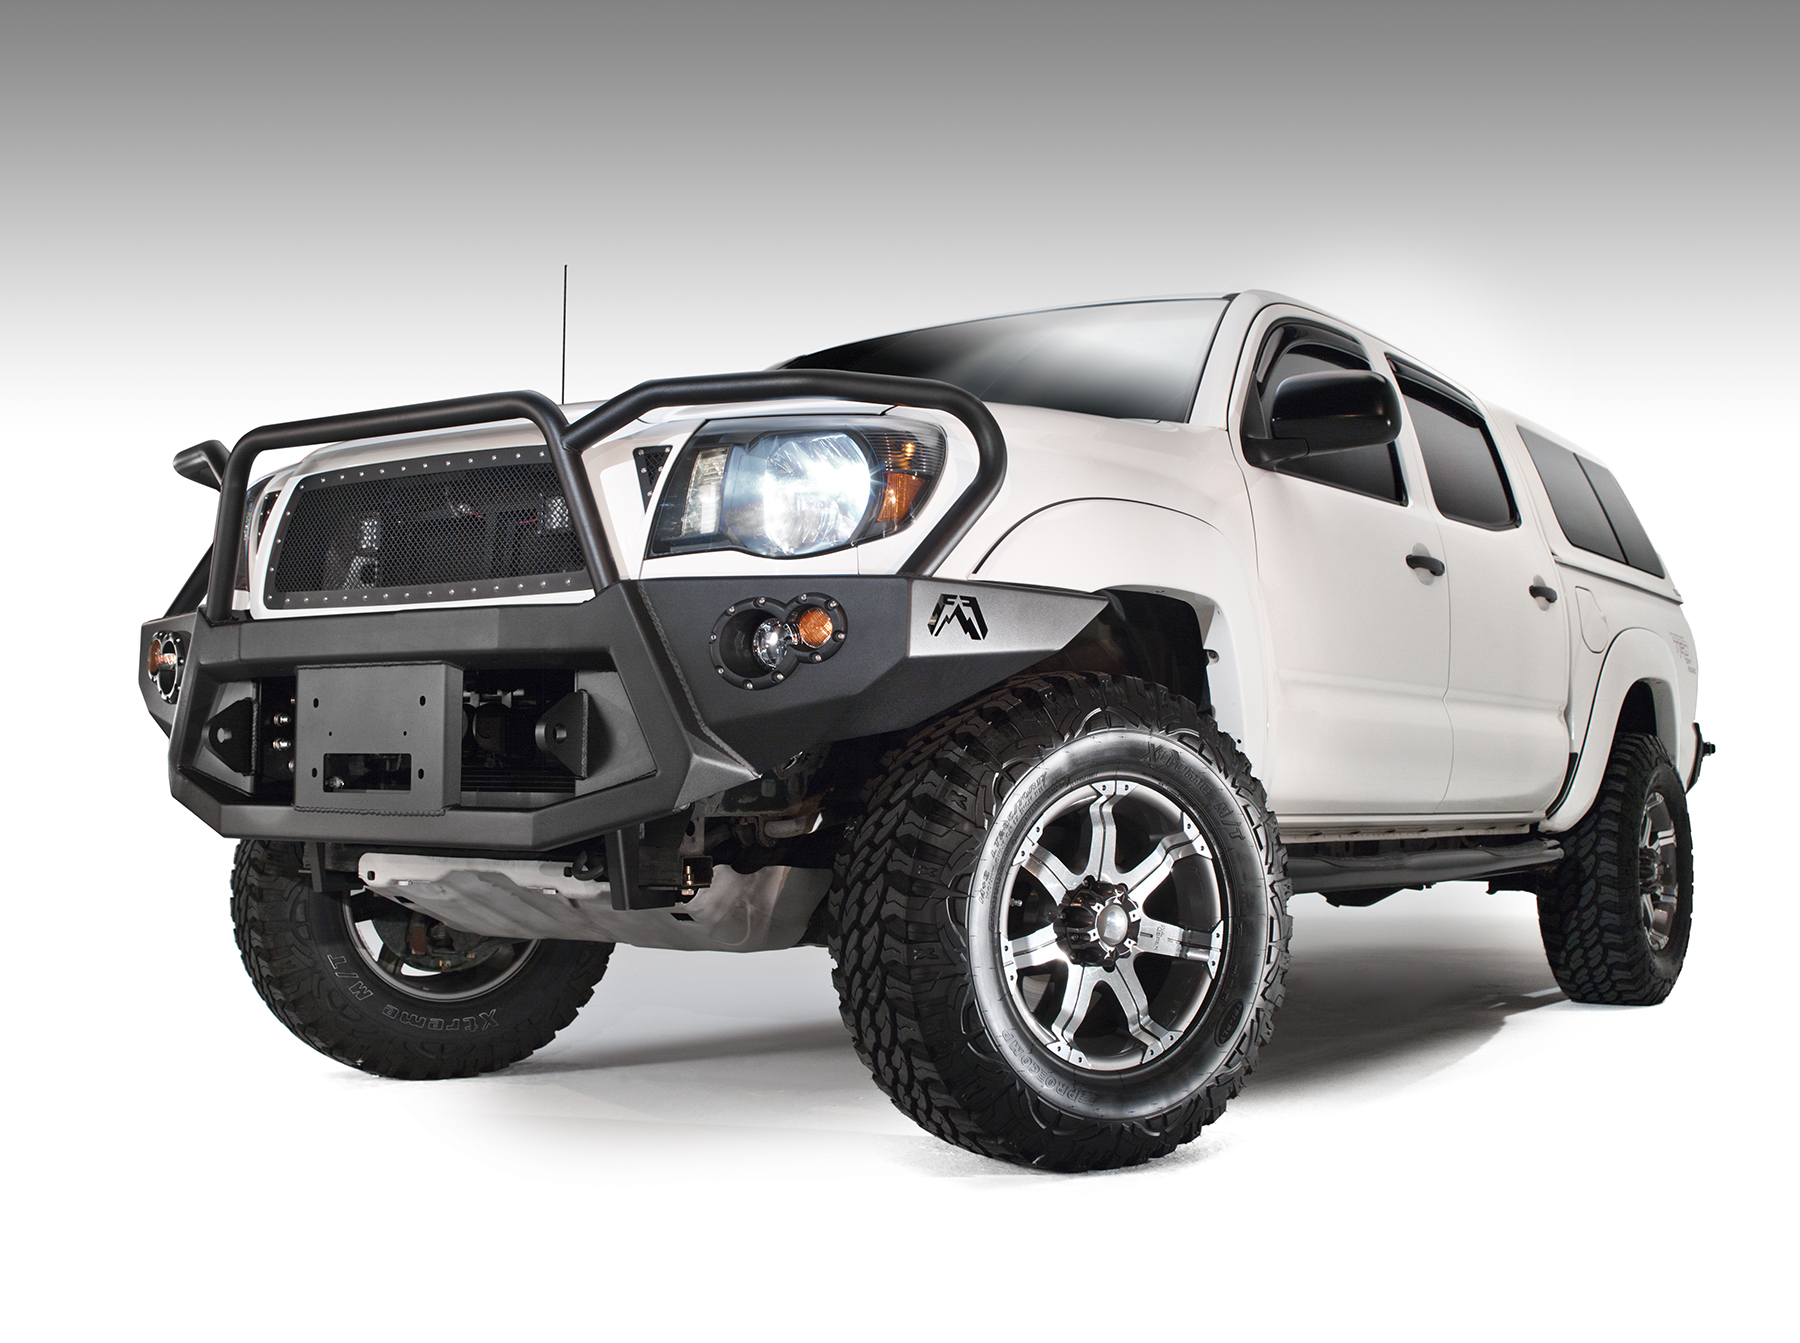 TT05 B1550 1 bumpers pure tacoma accessories, parts and accessories for your 2002 Tacoma Off-Road Bumper at eliteediting.co